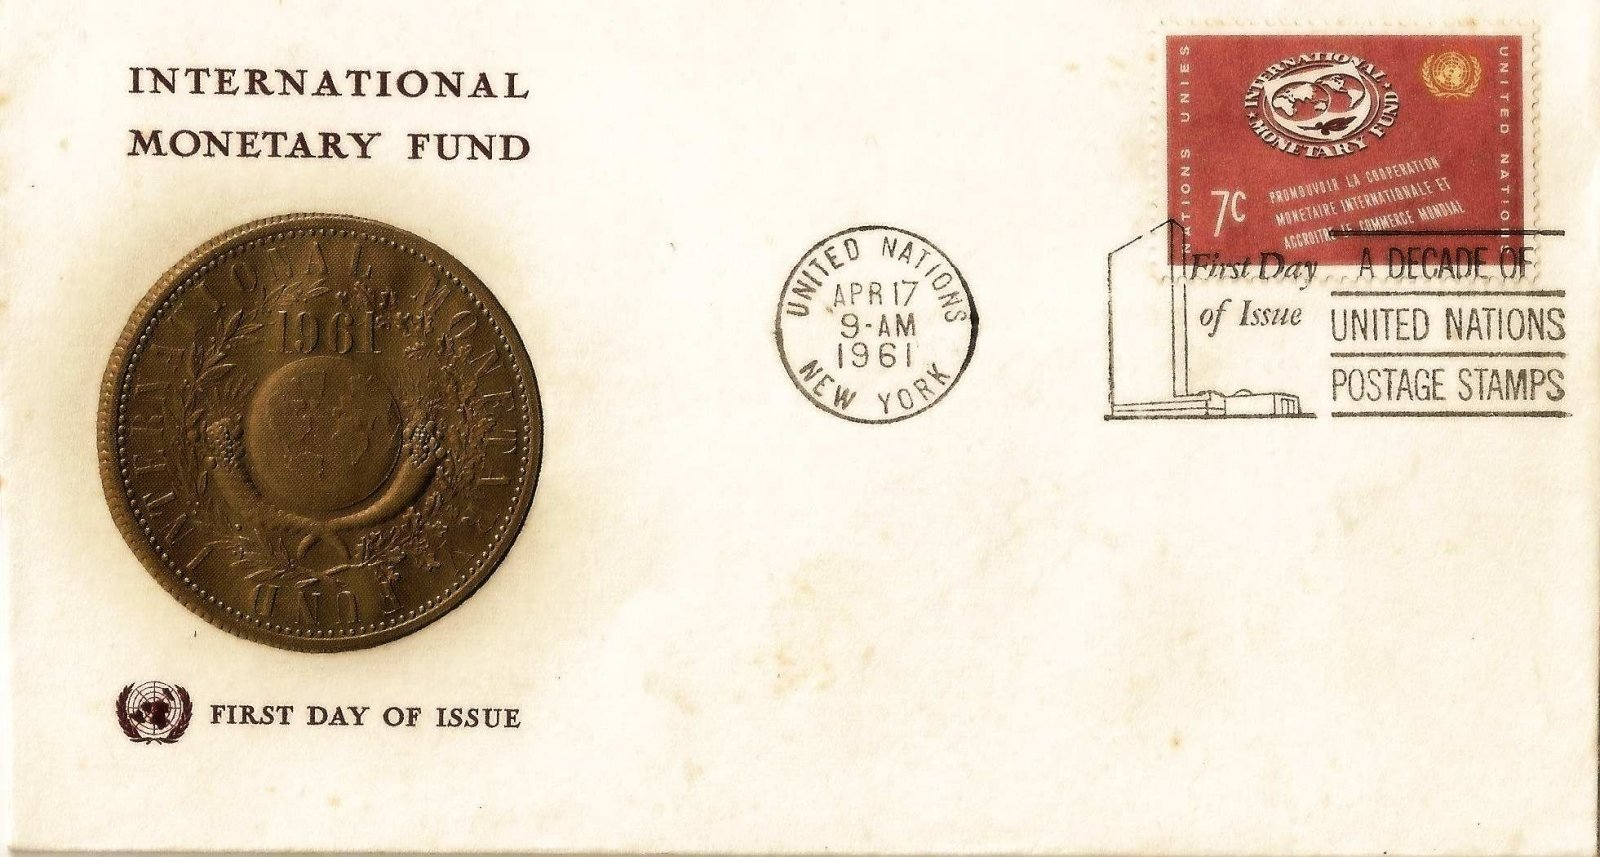 1961 nations unies cooperation monnetaire 7c